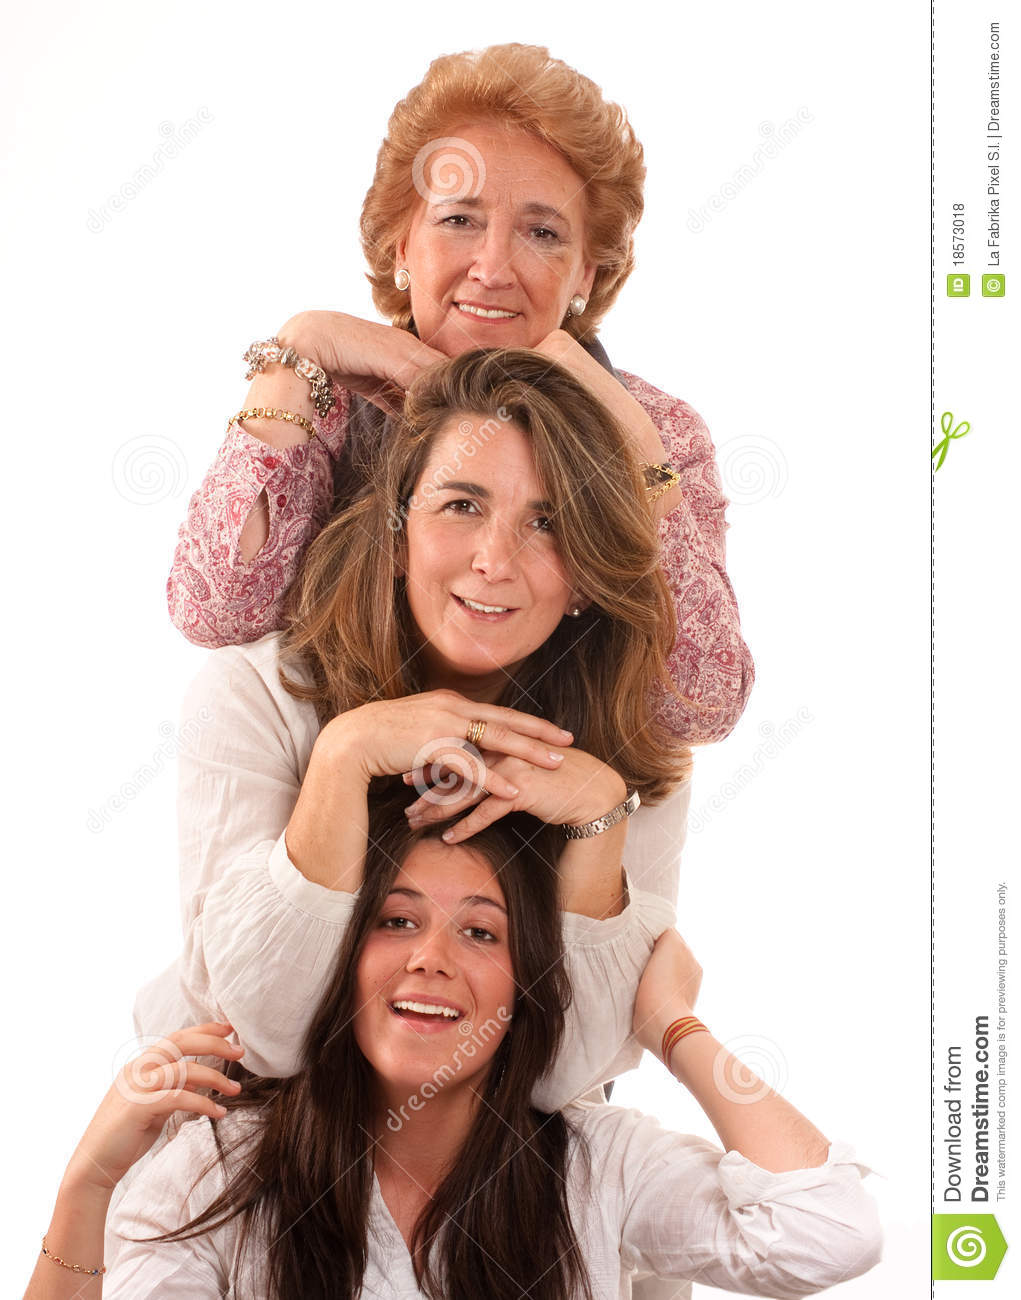 Generations of women